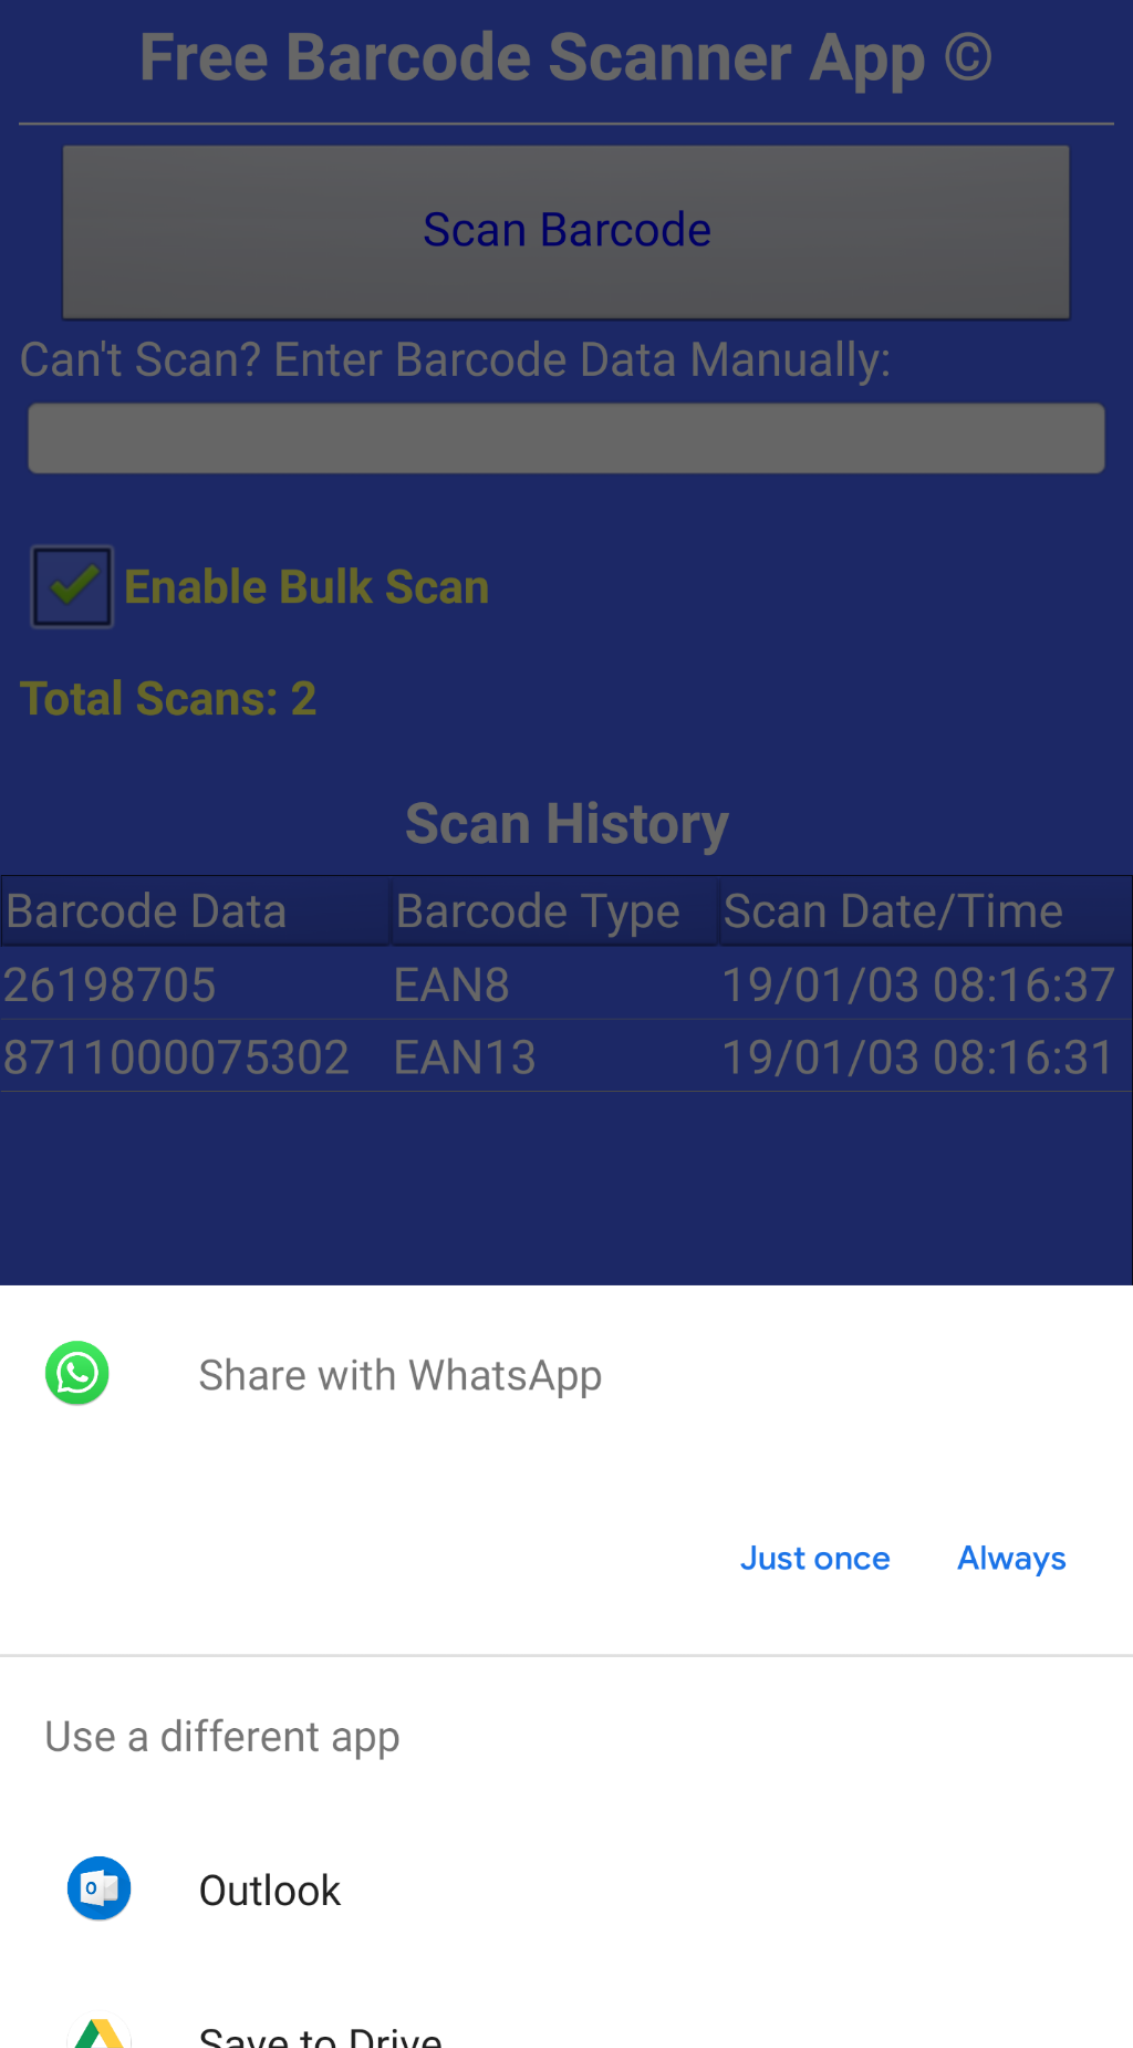 Free Barcode Scanner App | Scope Link Barcode Technologies